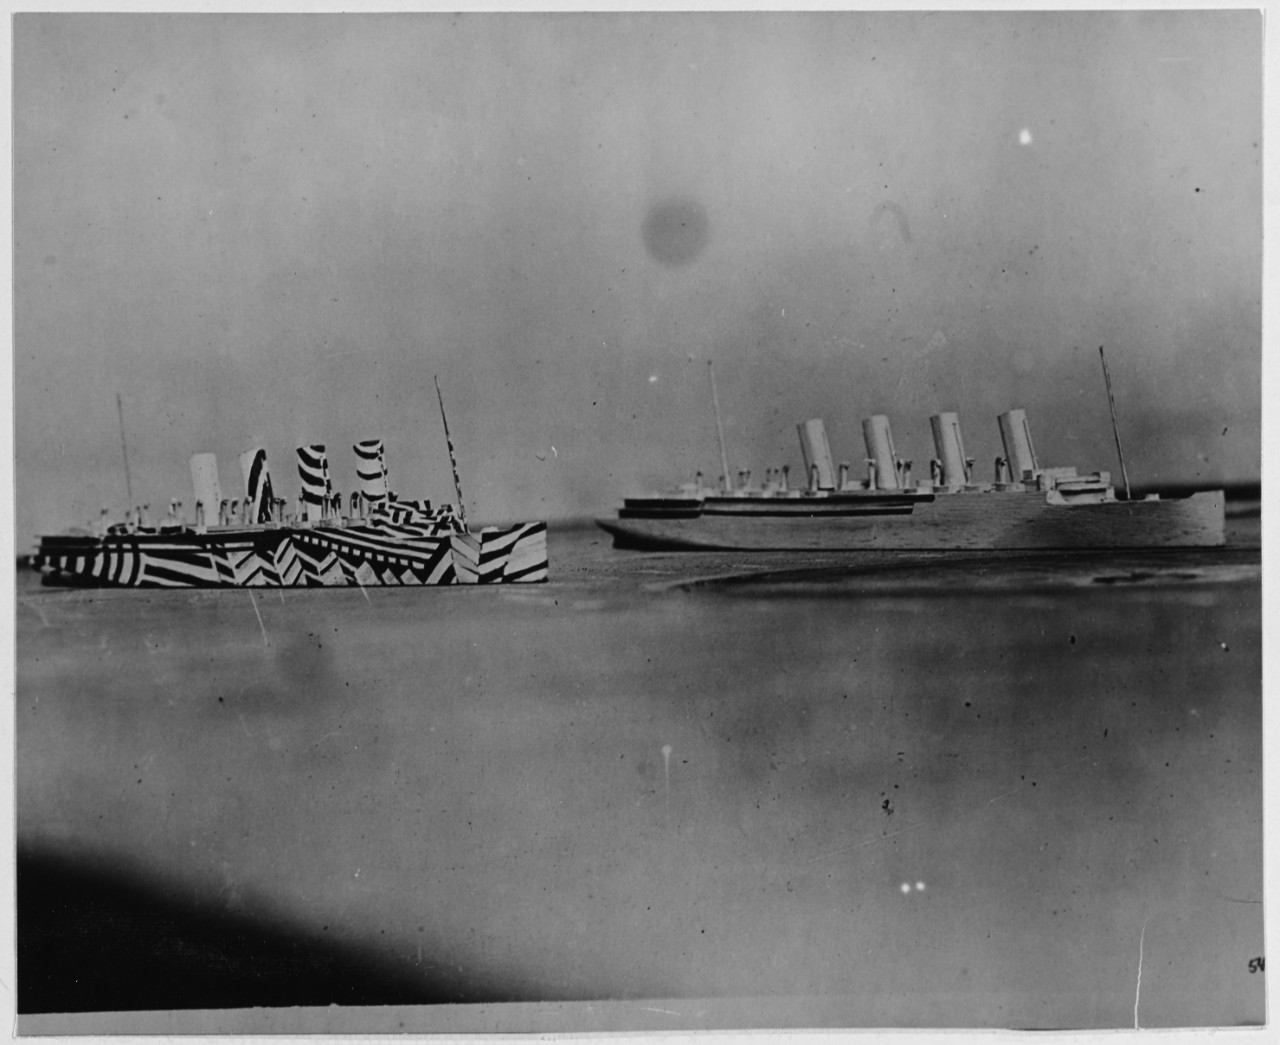 Photograph of a camouflaged ship